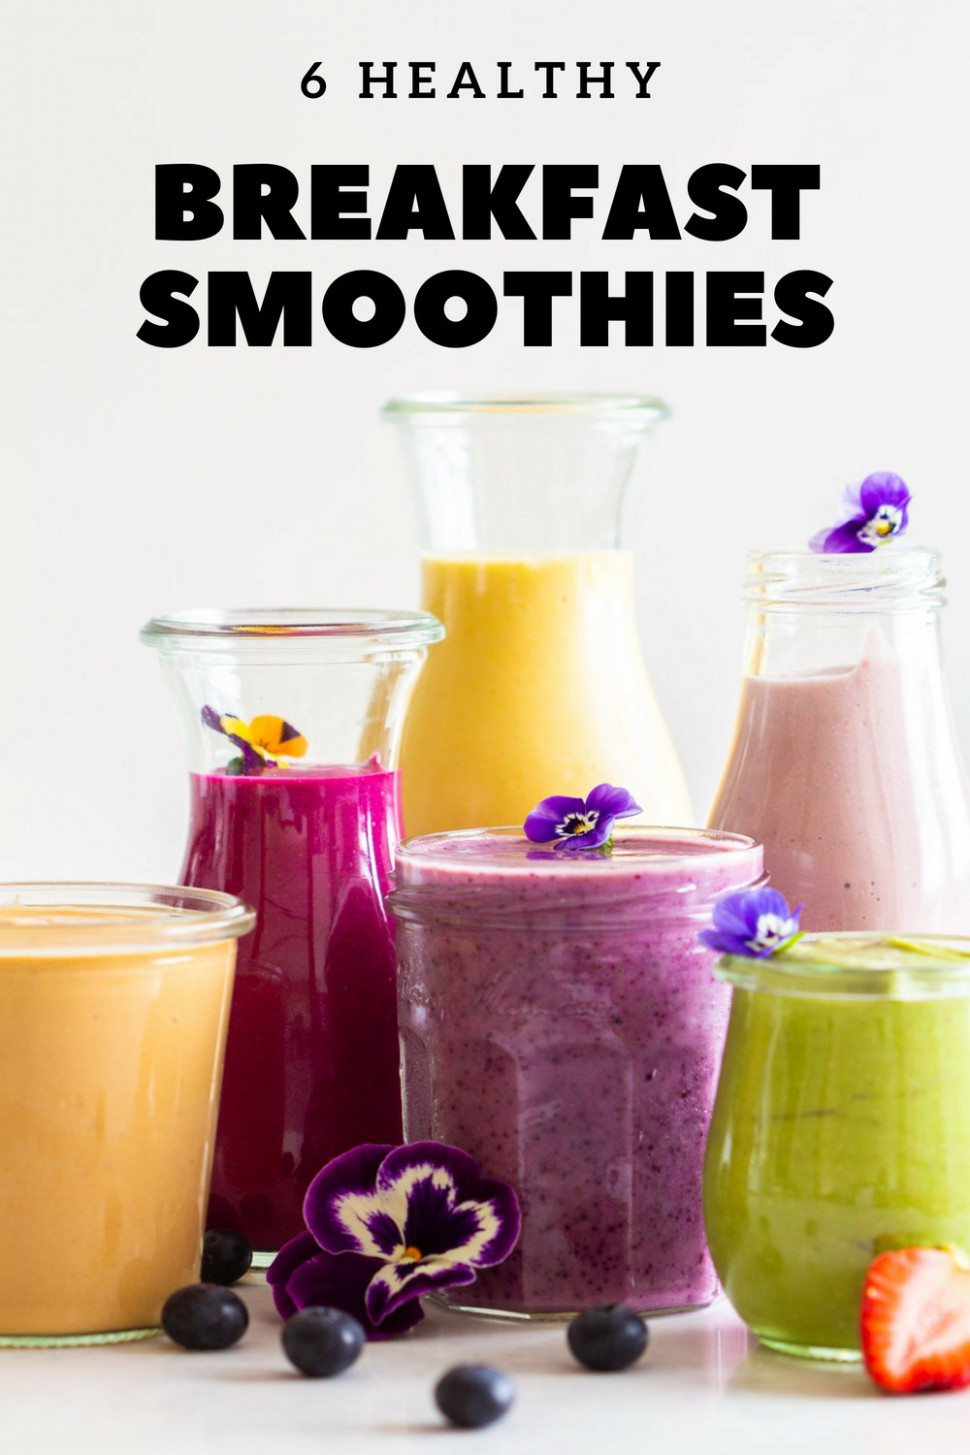 11 Healthy Breakfast Smoothies - Green Healthy Cooking - recipes healthy smoothies